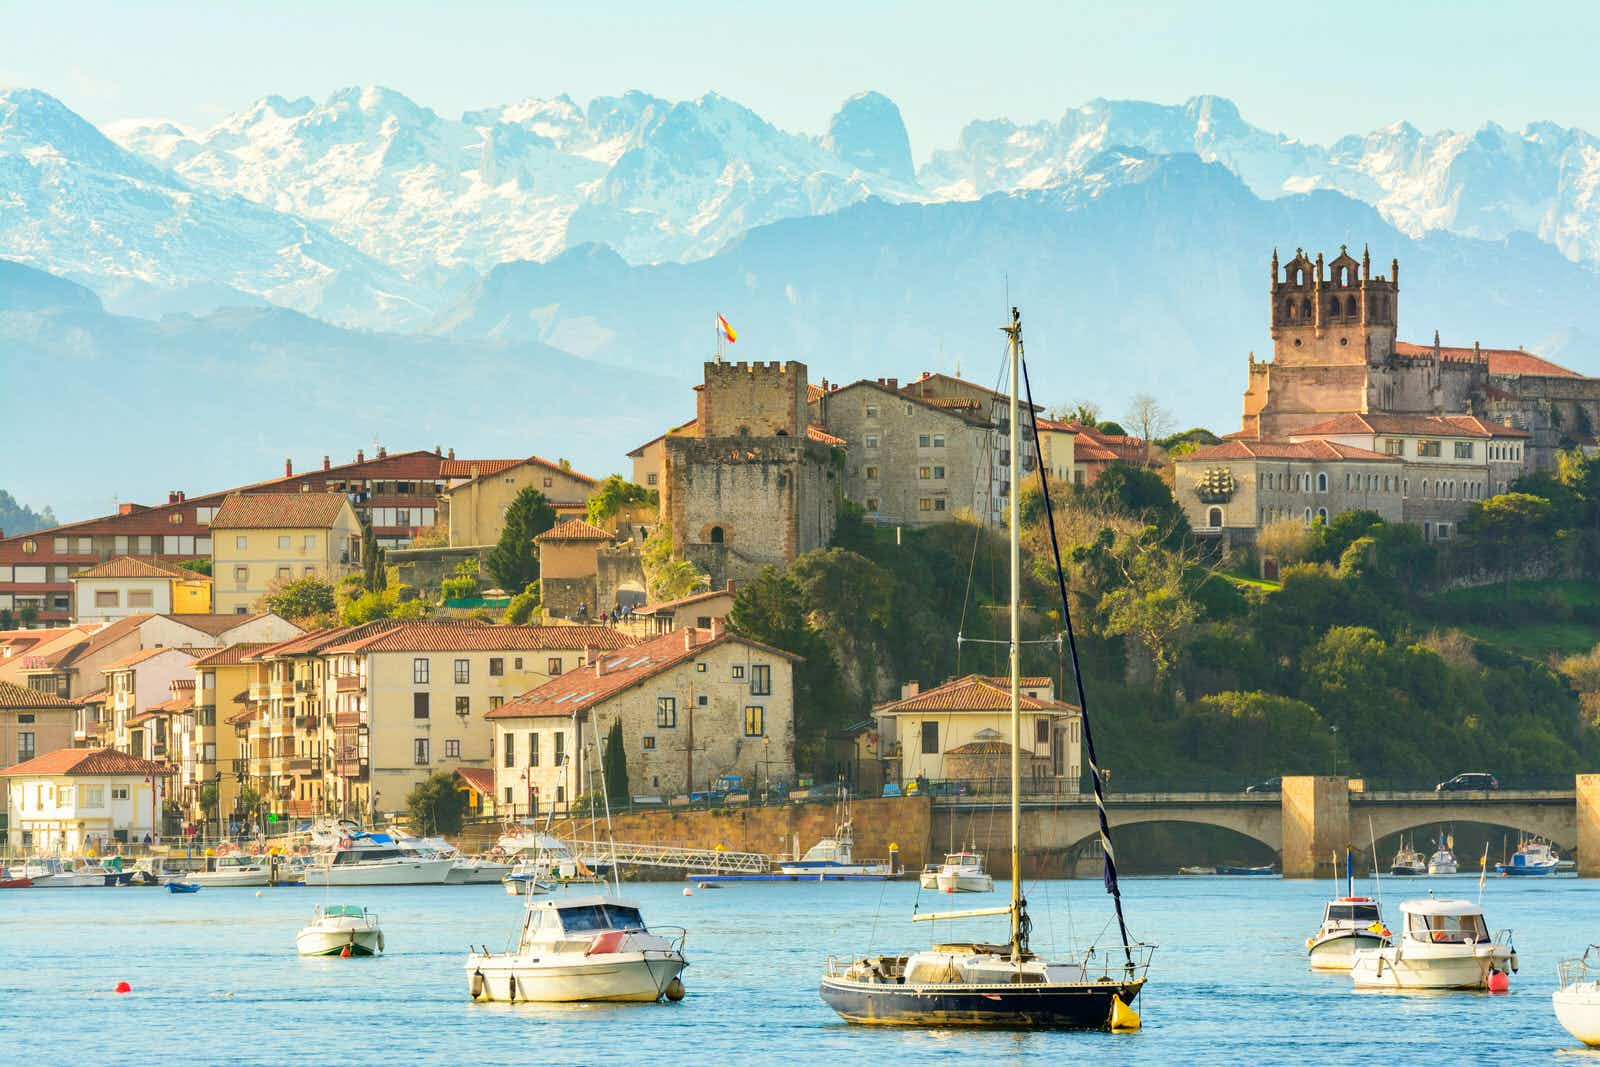 Cantabria: discovering Spain's little-visited north coast